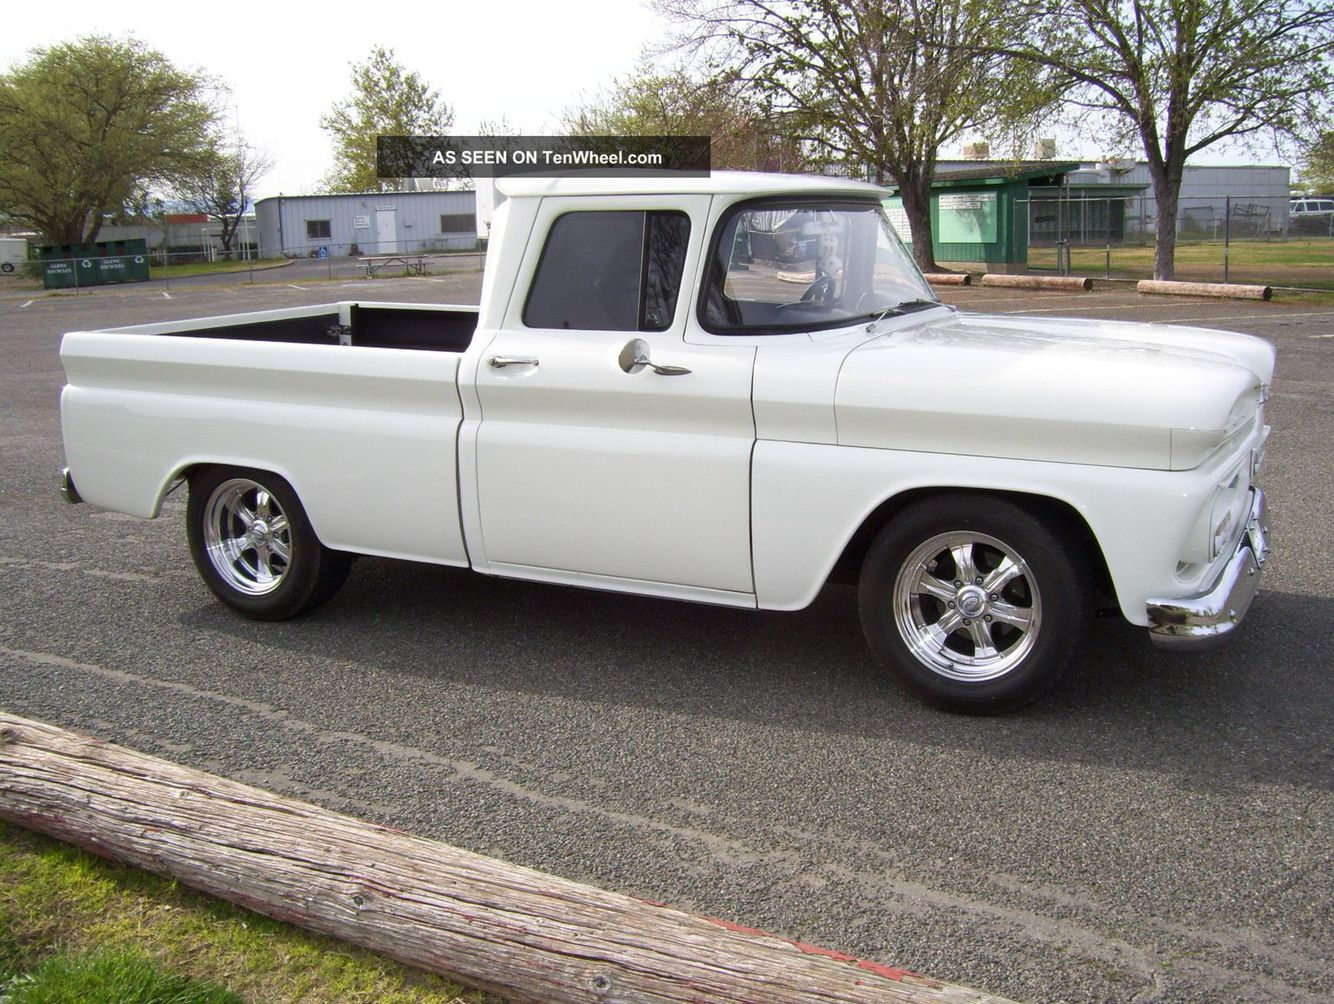 Pickup 61 chevy pickup : Tinted windows, rims | Chevy 1960 C10 Apache | Pinterest | Chevy ...